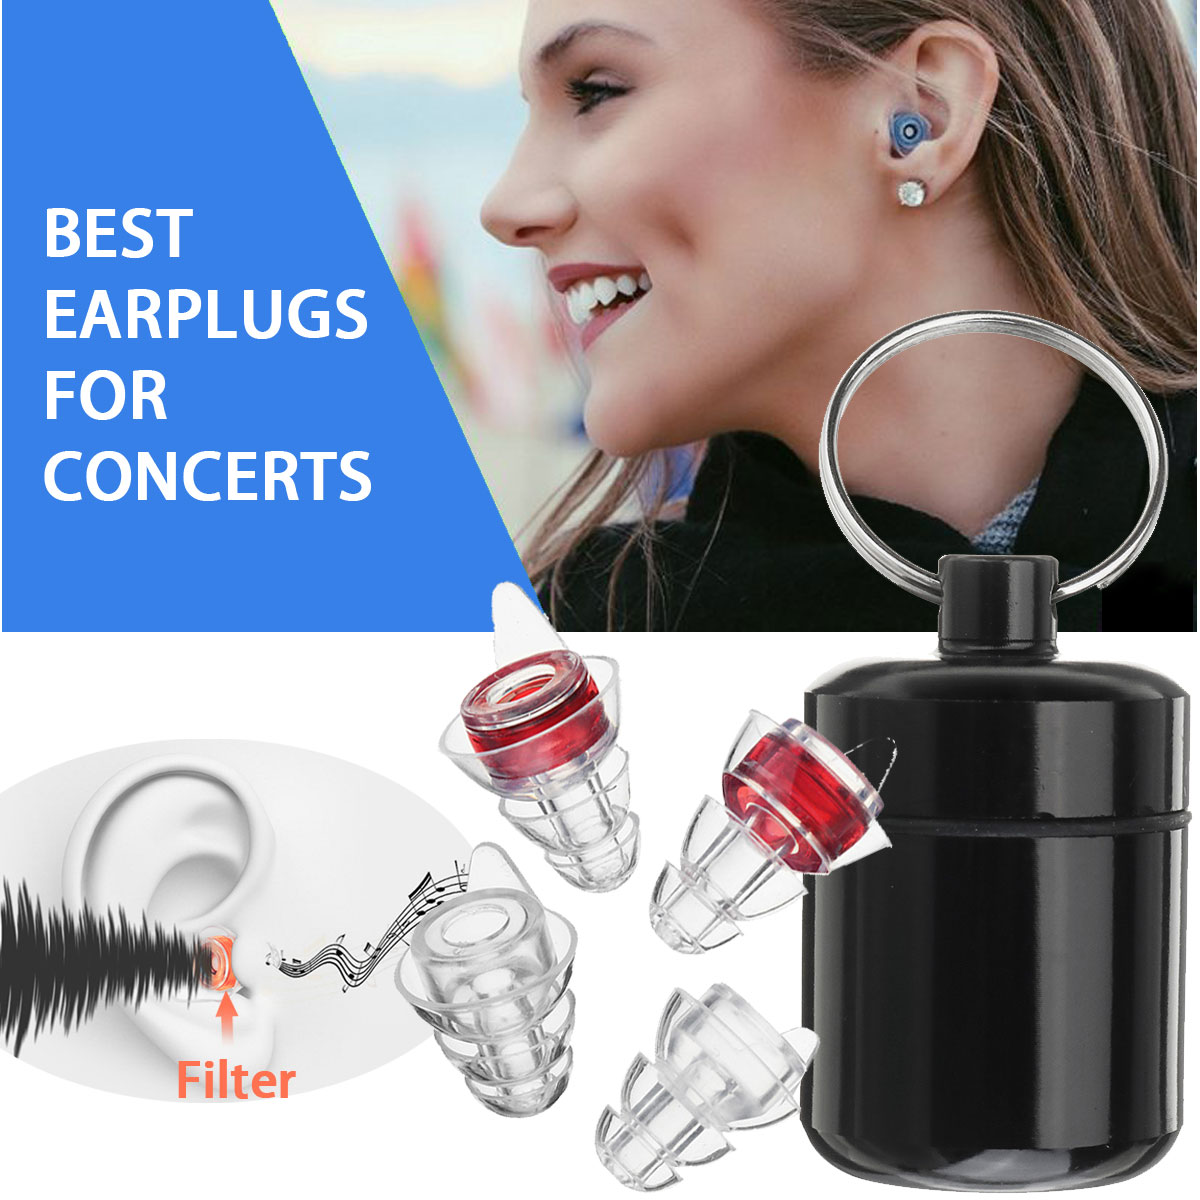 2 Pairs Noise Cancelling Hearing Protection Earplugs For Concerts Sleeping Bar DJ Motor Sports Reusable Silicone Ear plugs safurance 2pairs noise cancelling hearing protection earplugs for concerts musician motorcycles reusable silicone ear plugs